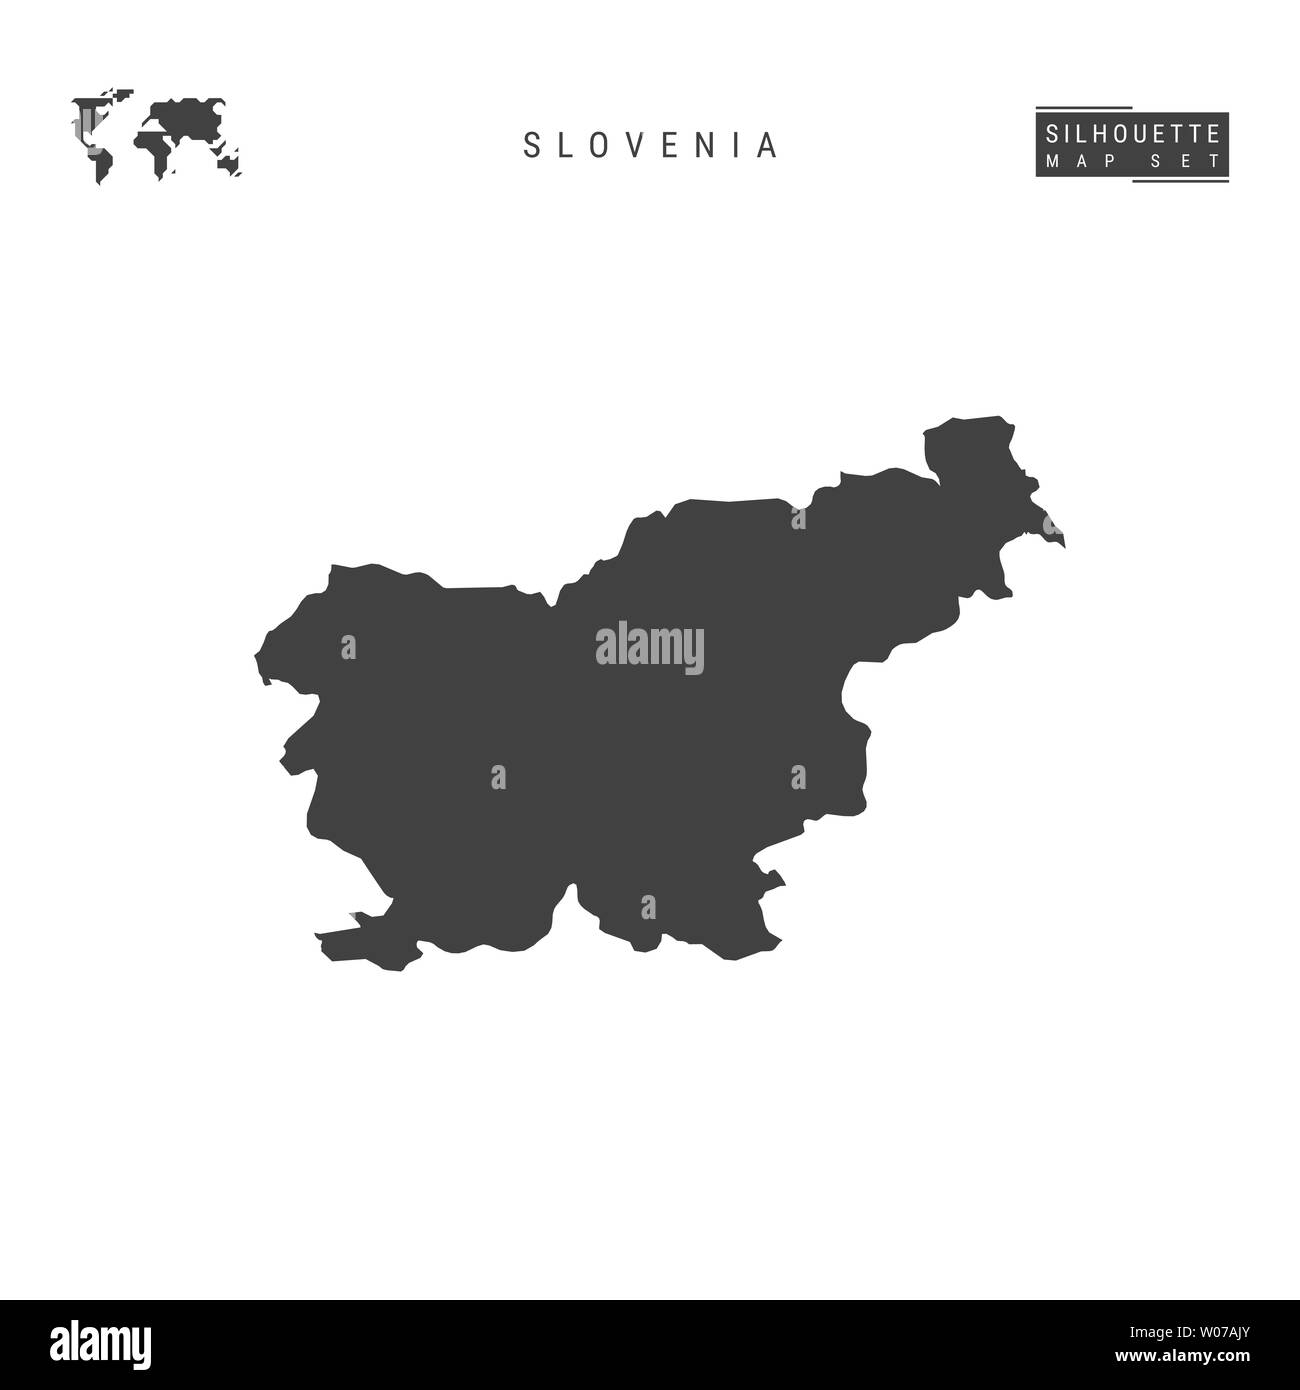 Slovenia Blank Map Isolated on White Background. High-Detailed Black Silhouette Map of Slovenia. - Stock Image